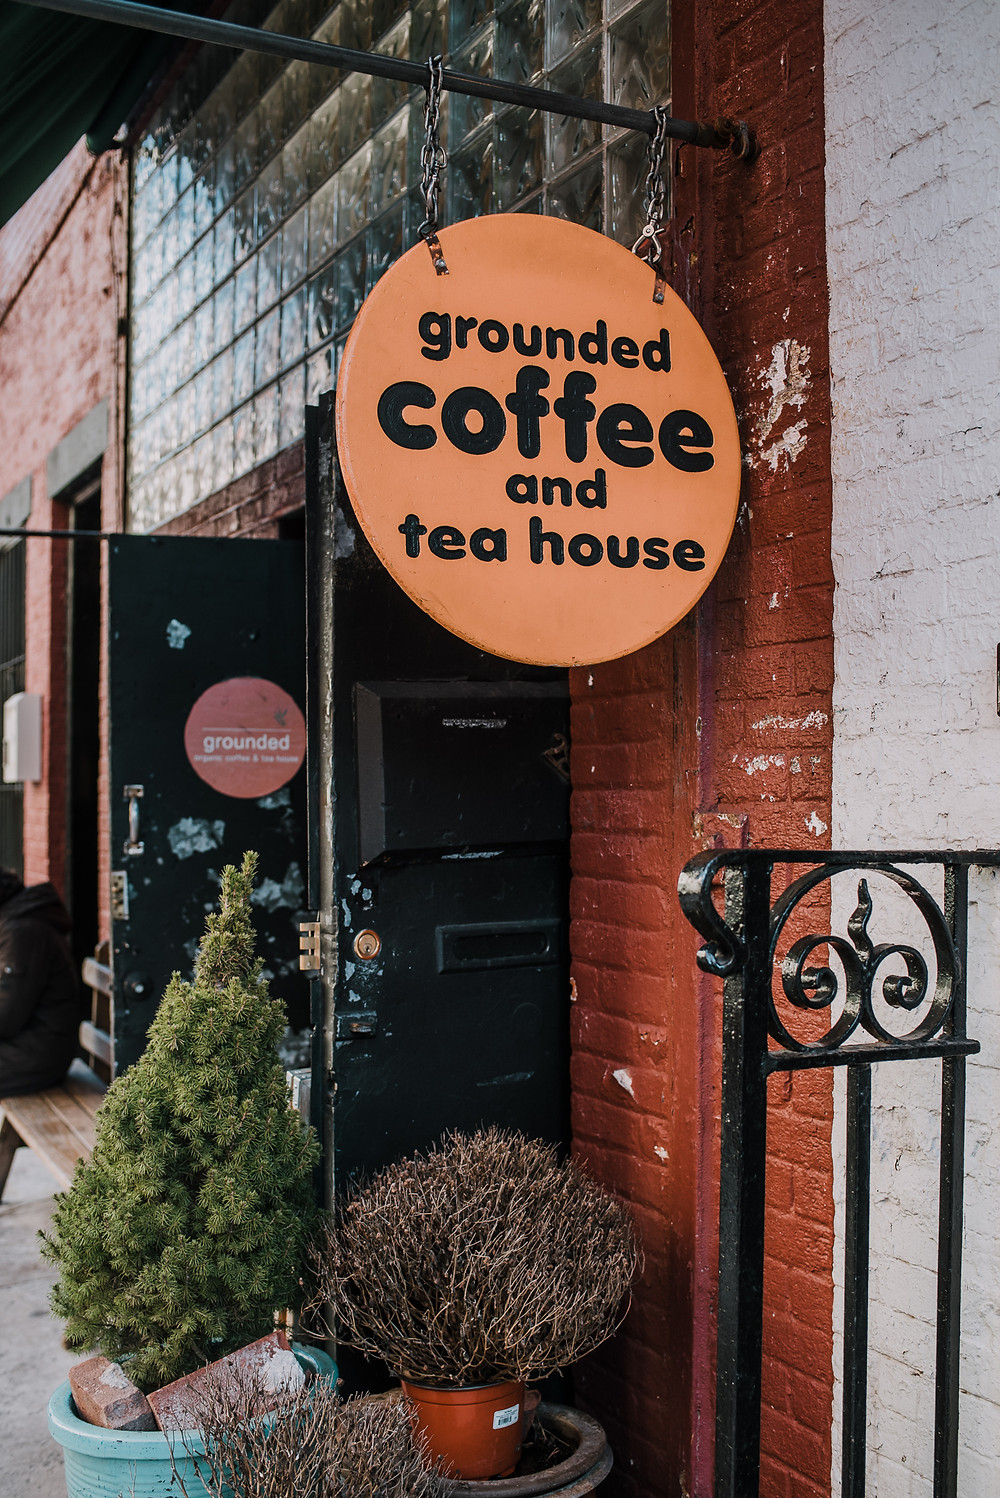 Grounded Coffee and Tea House (c) Silvie Bonne